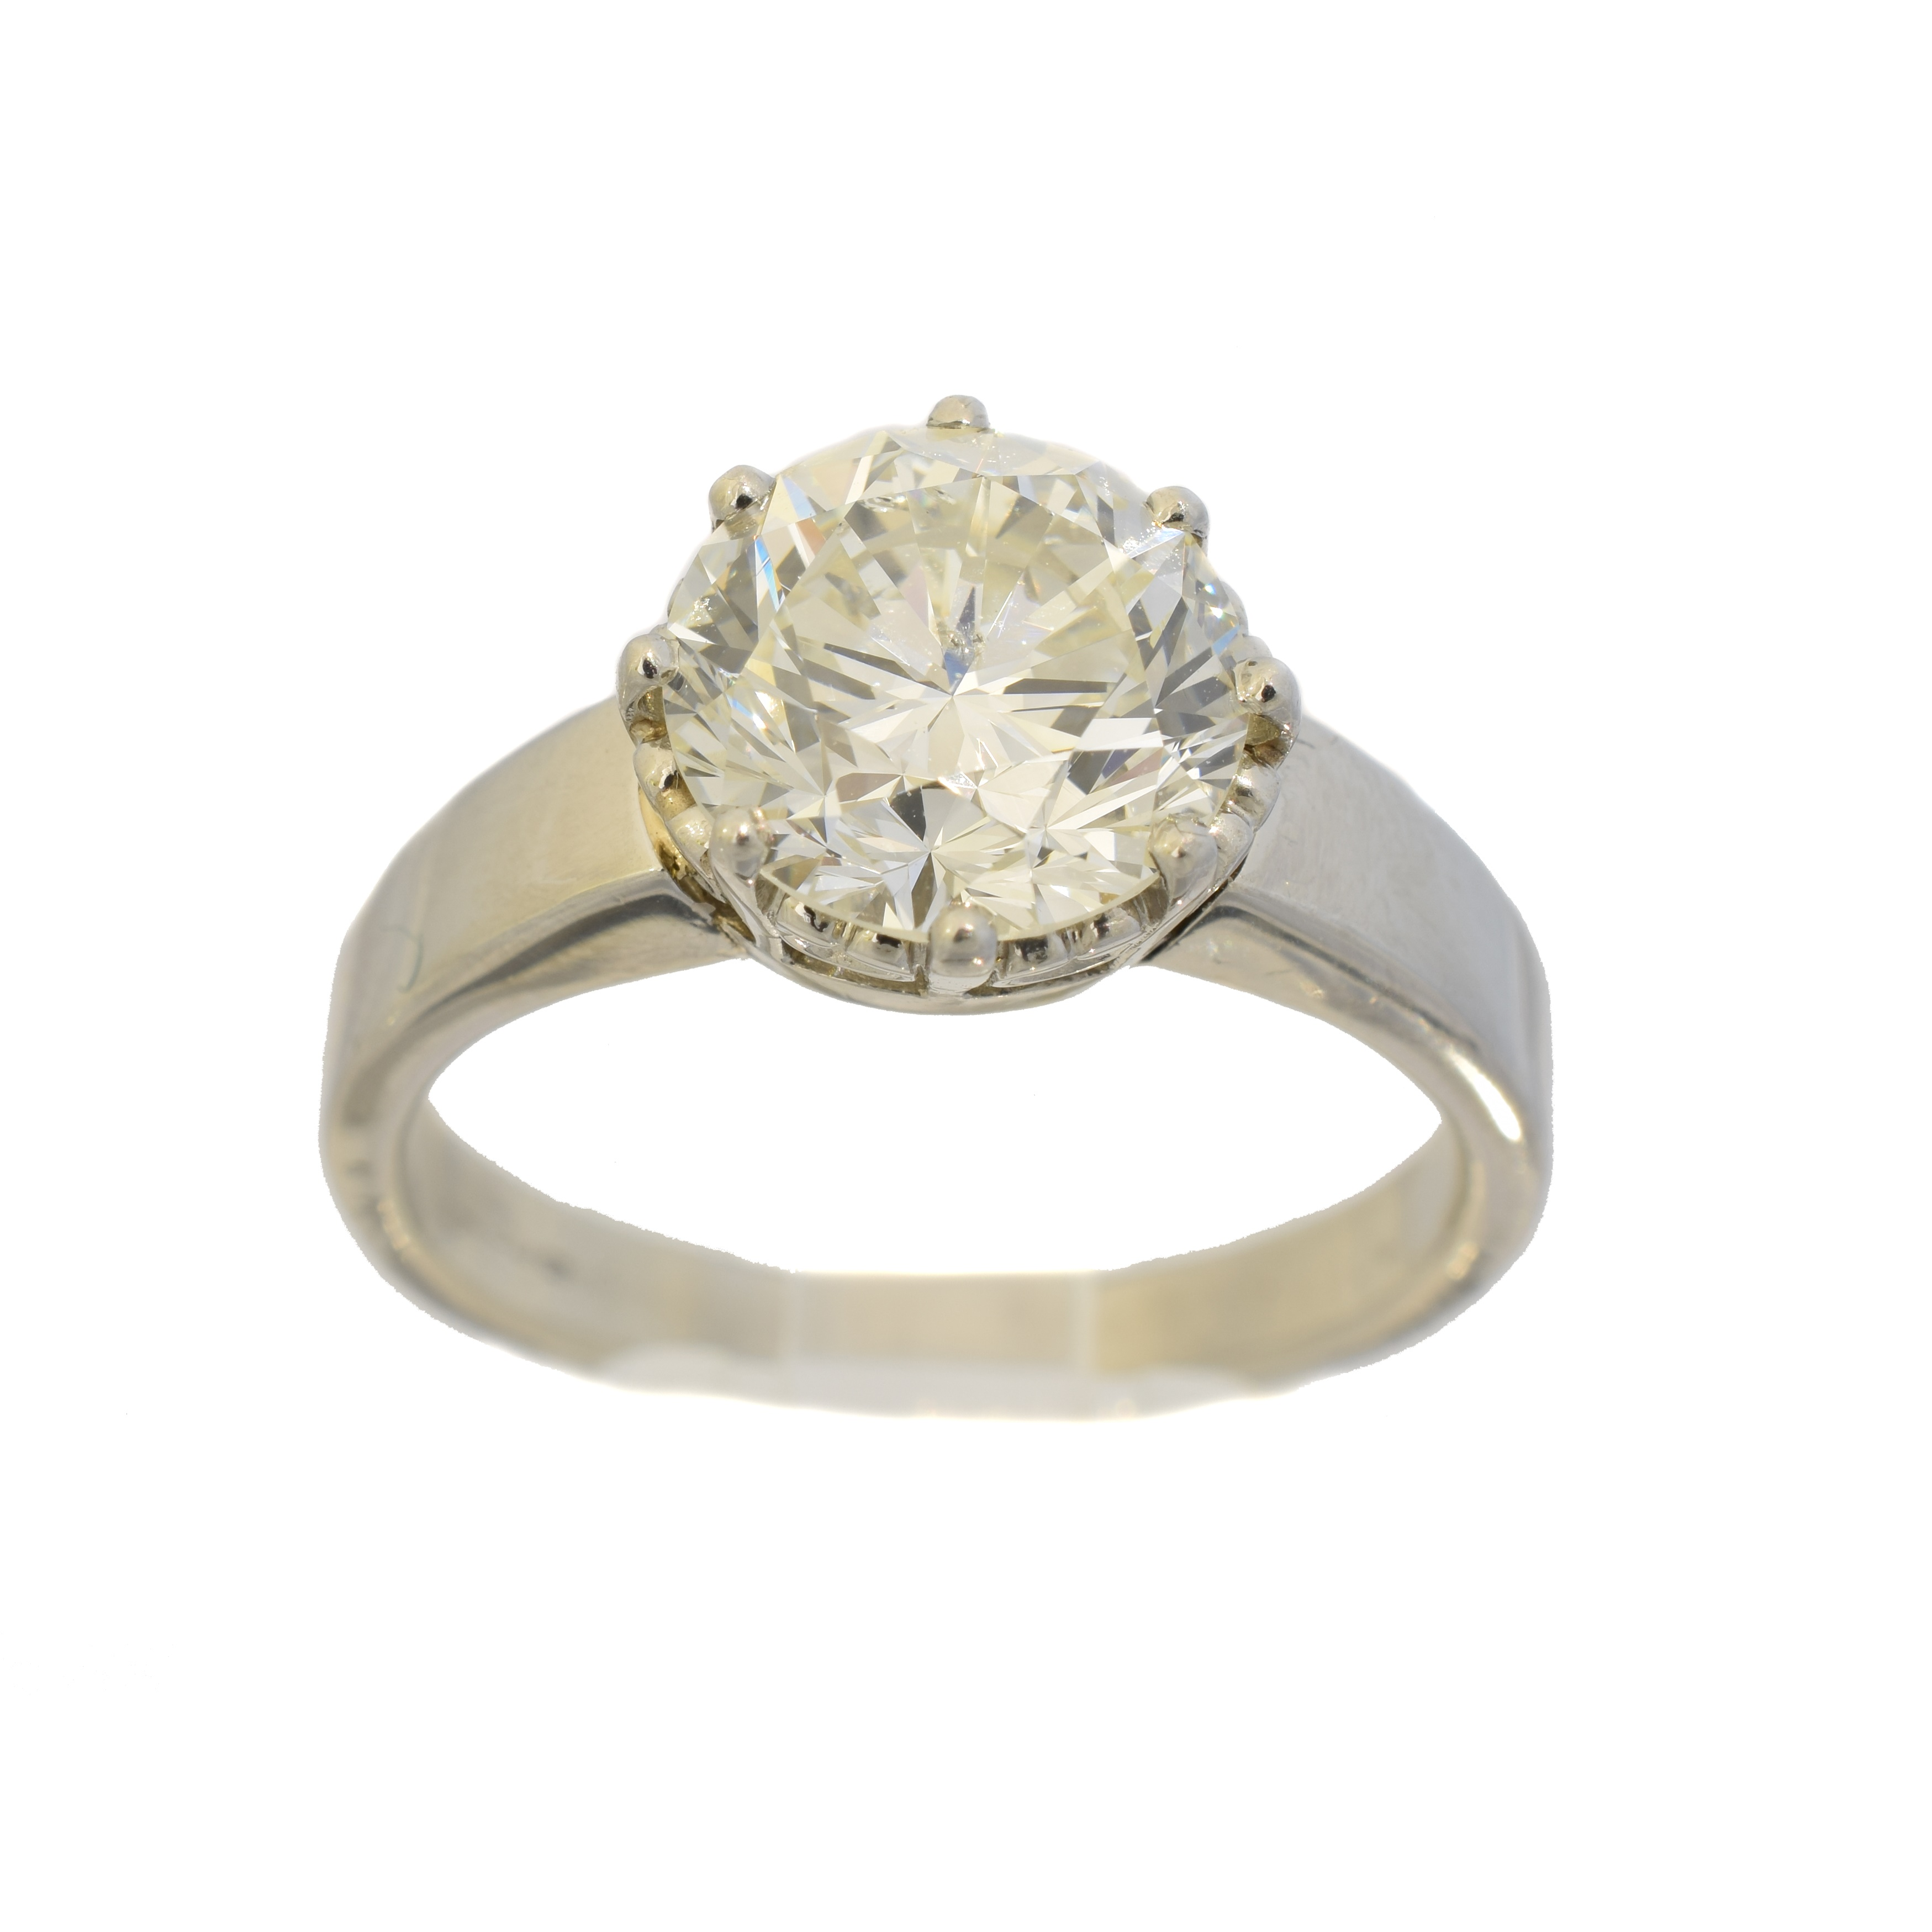 A platinum diamond single stone ring, the brilliant cut diamond weighing approx. 4cts within an eight claw setting, estimated colour J-K, estimated clarity SI2-P1, hallmarks for Birmingham, ring size U, gross weight 11.3g.